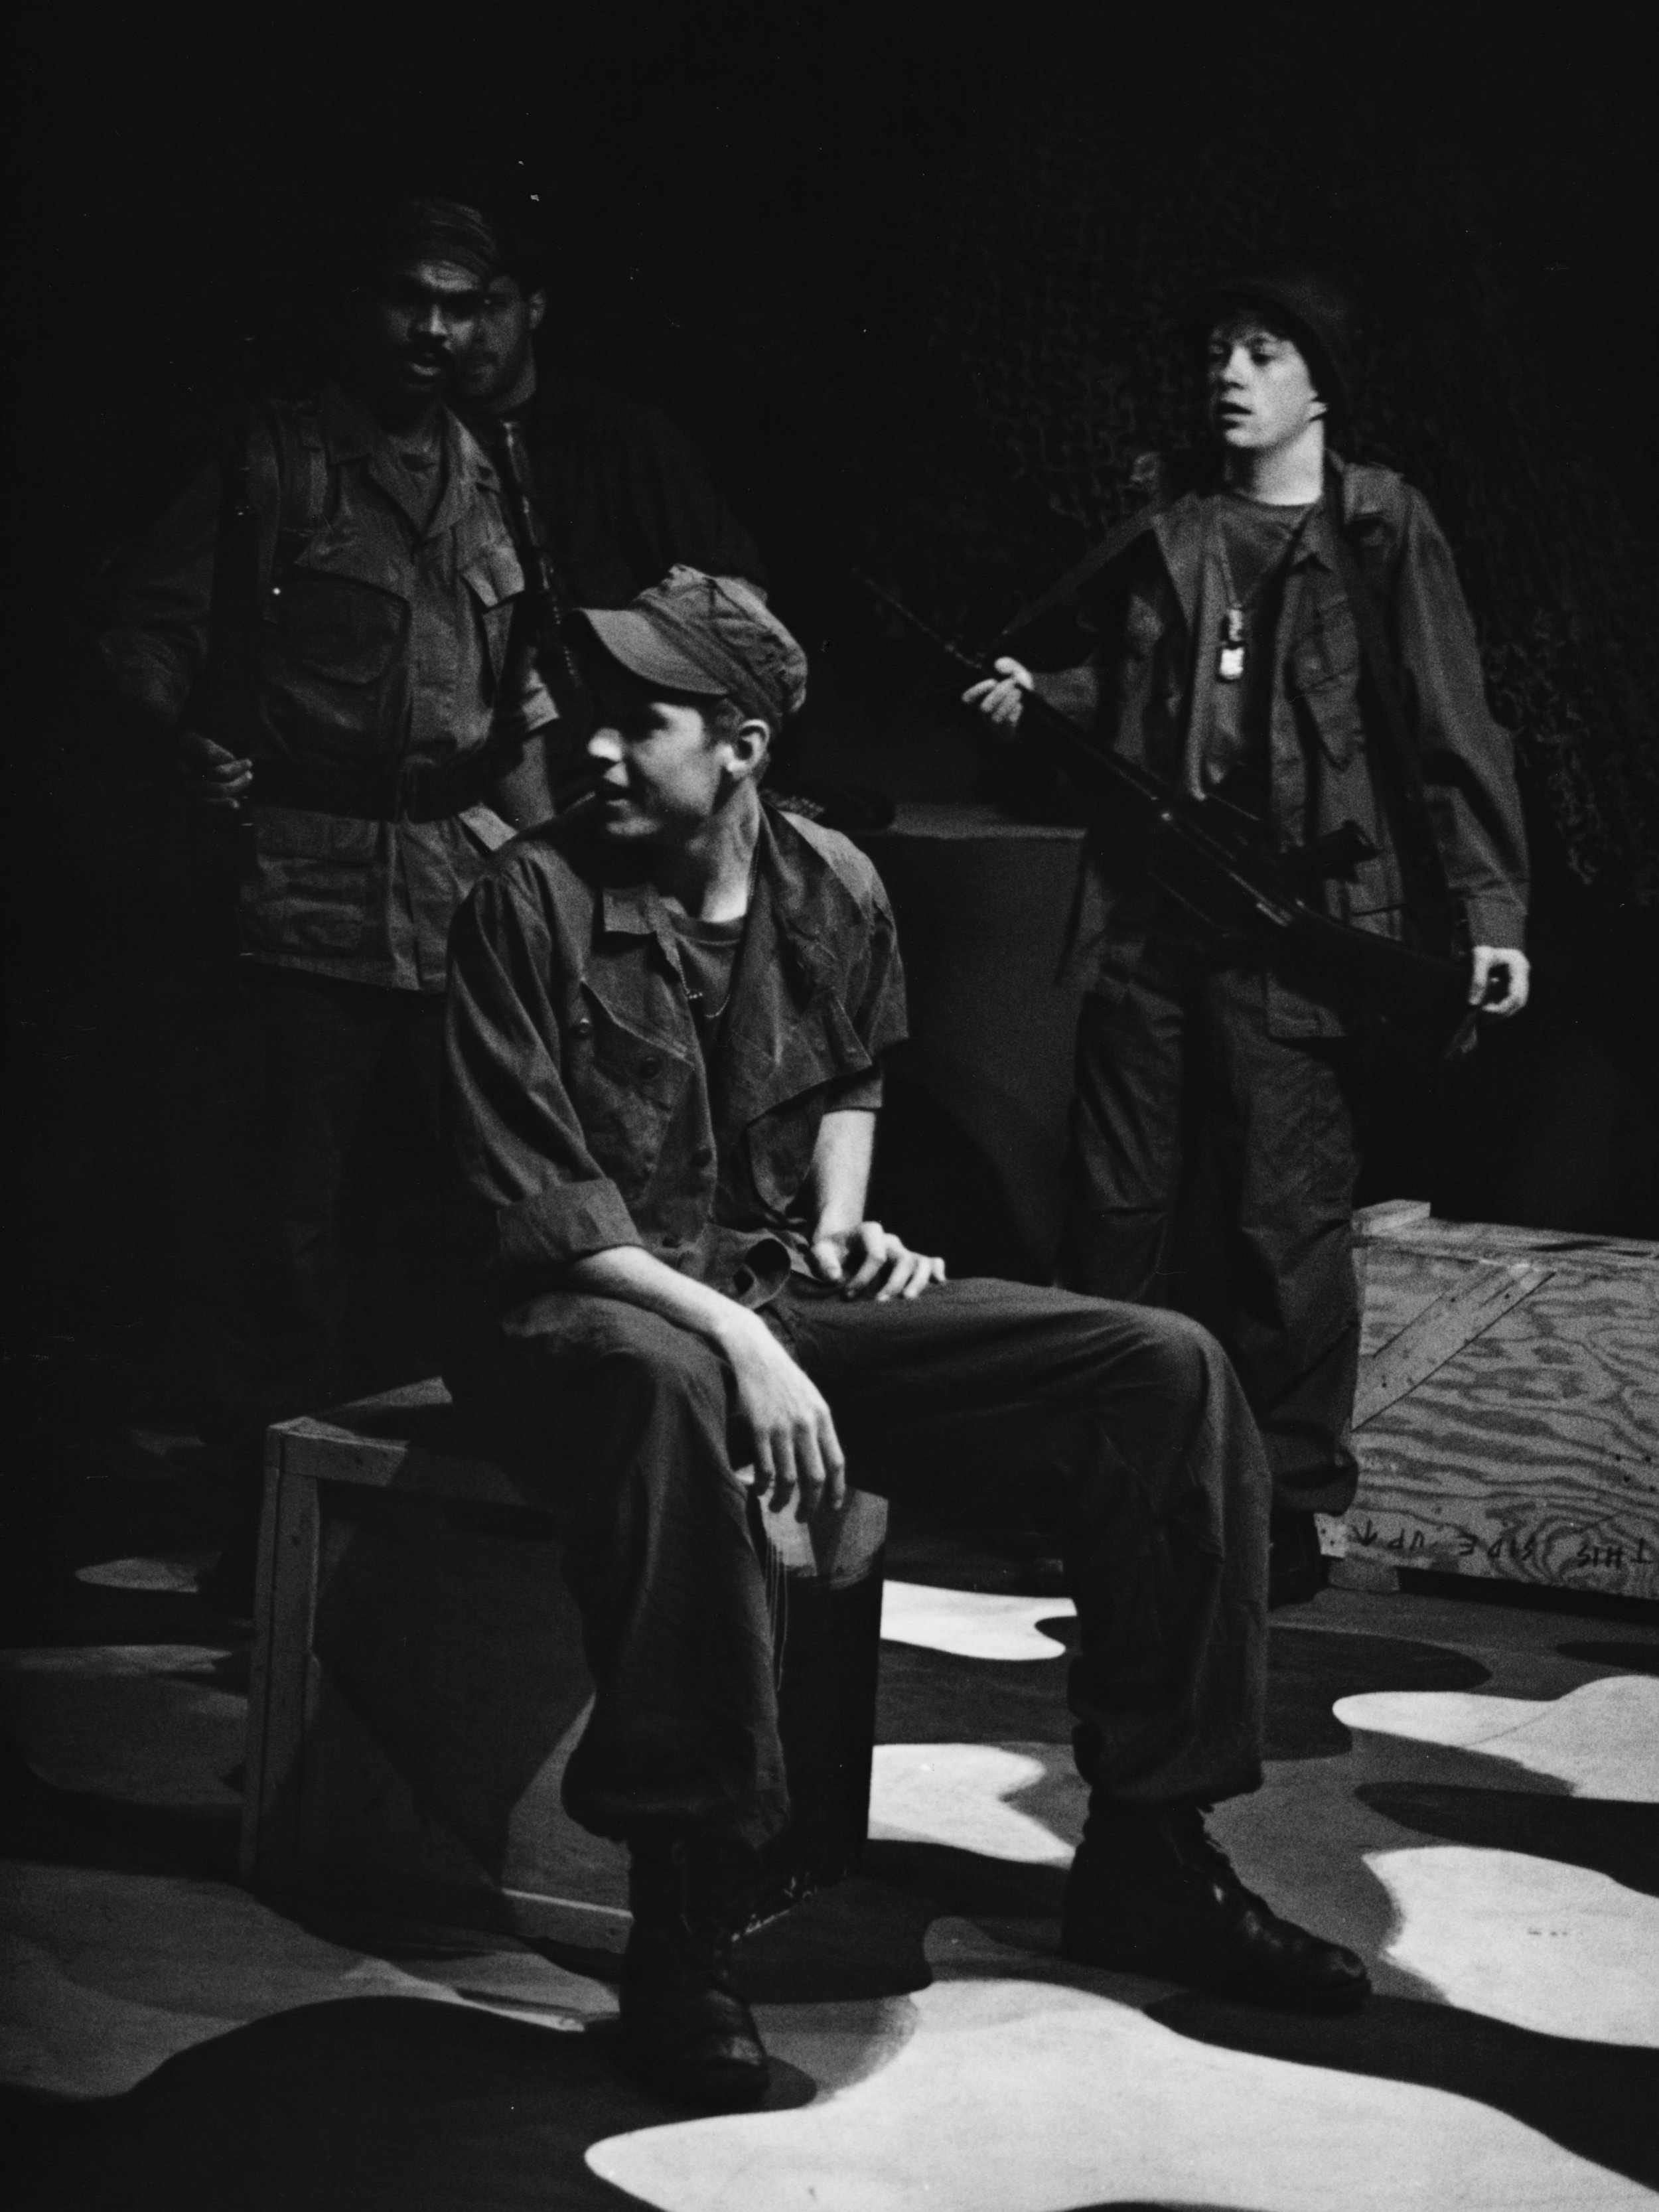 ABOUT TRACERS - A composite or collage of interrelated scenes, the play follows the lives of a group of